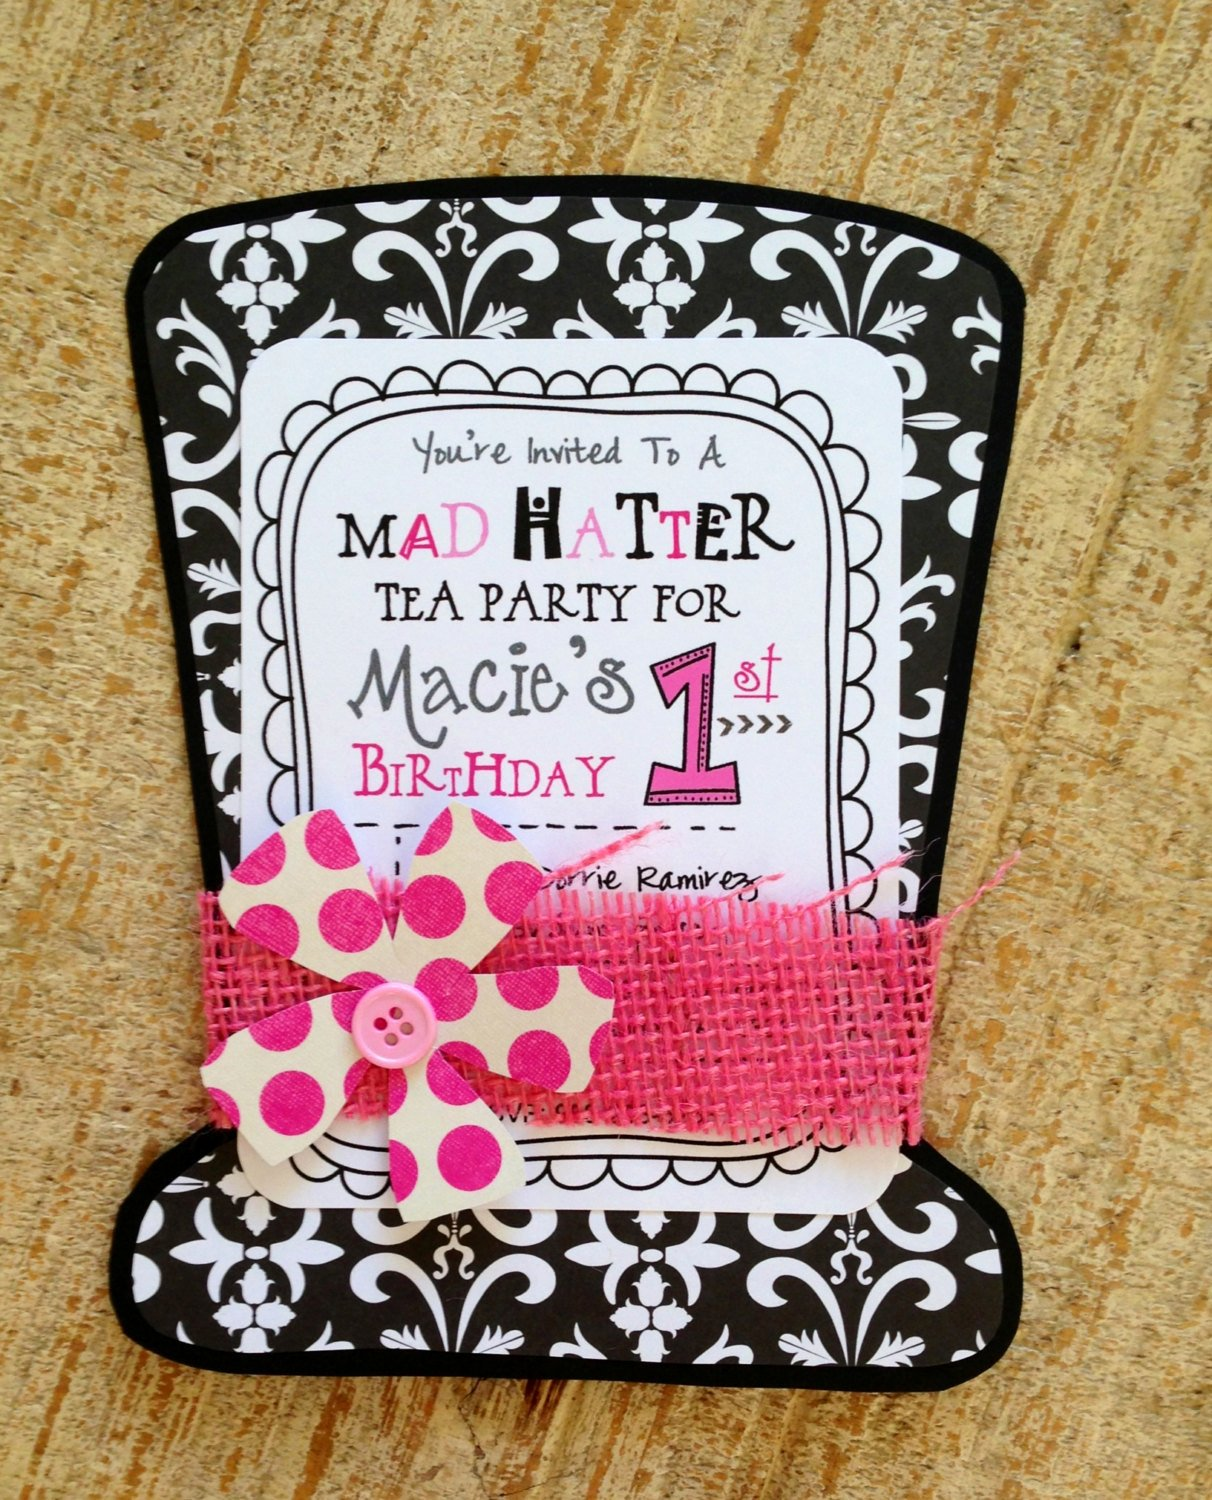 Mad Hatter Tea Party Invites Beautiful Mad Hatter Tea Party Invitation by Jodigilbert2004 On Etsy